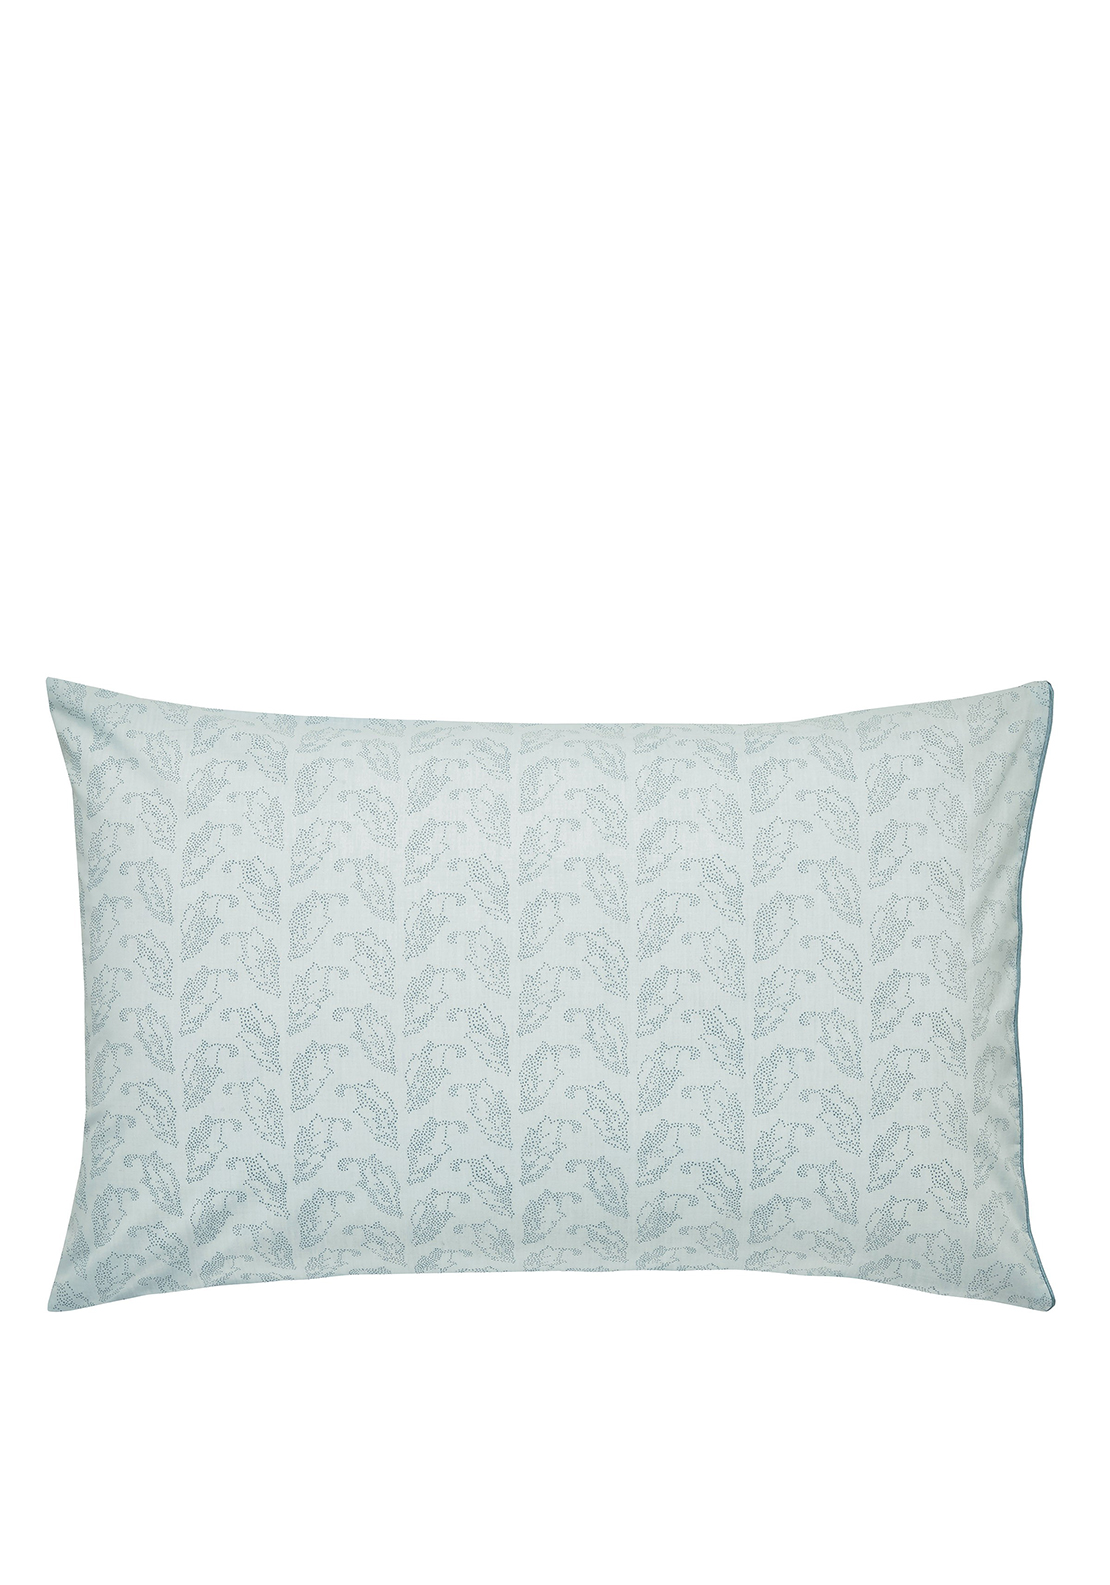 Sanderson Floriella Pillow Covers Grey